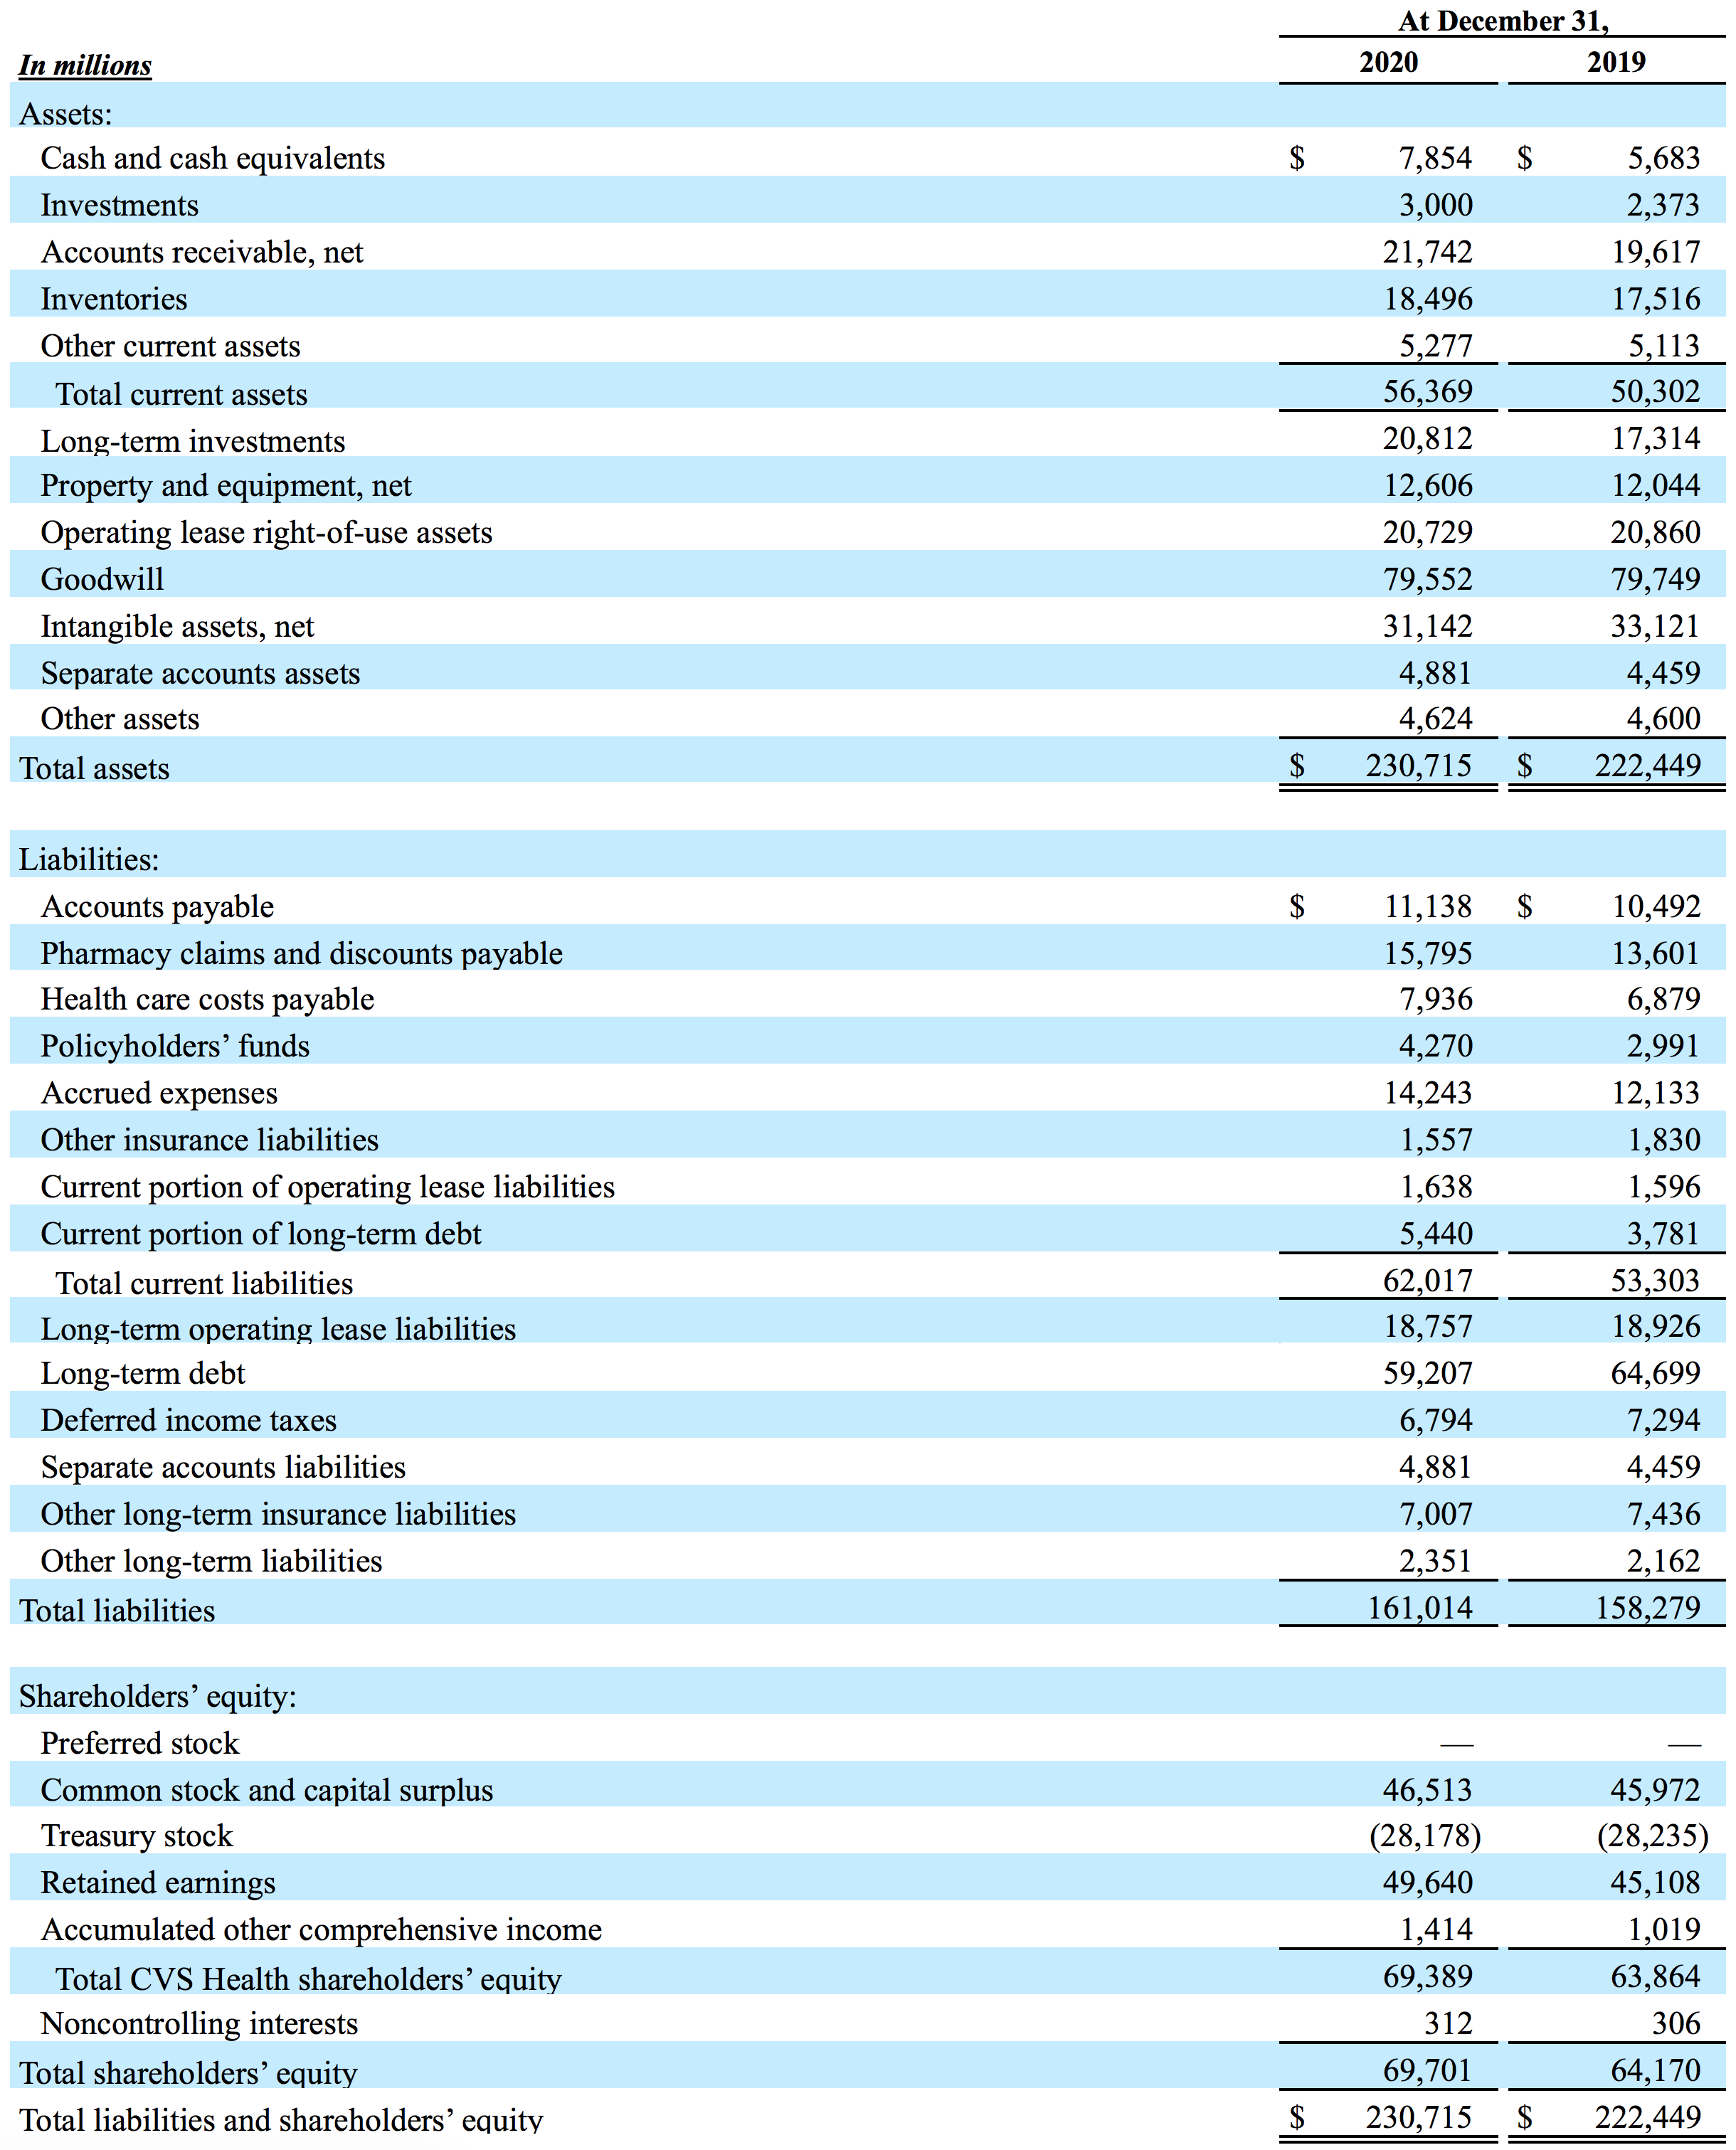 Table: Condensed Consolidated Balance Sheets (Unaudited)